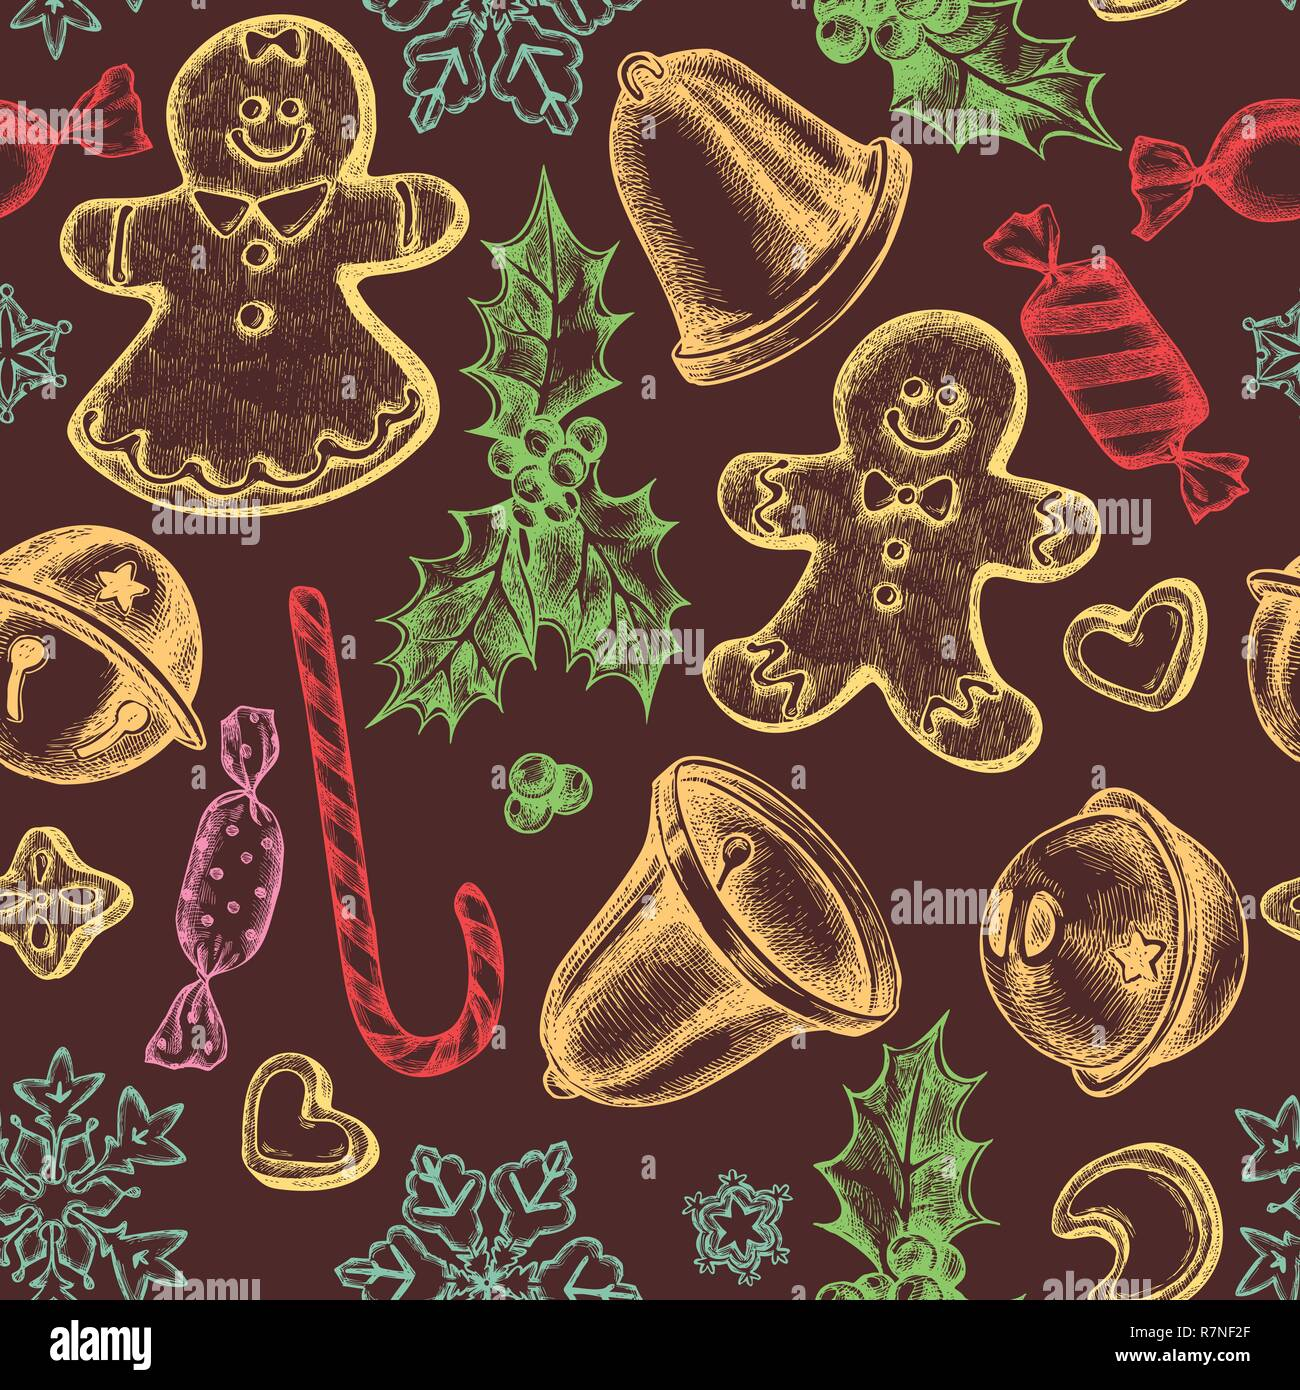 Seamless pattern with colored bells, jingles, gingerbread men, gingerbread, lollipop, candies, snowflakes, holly - Stock Image